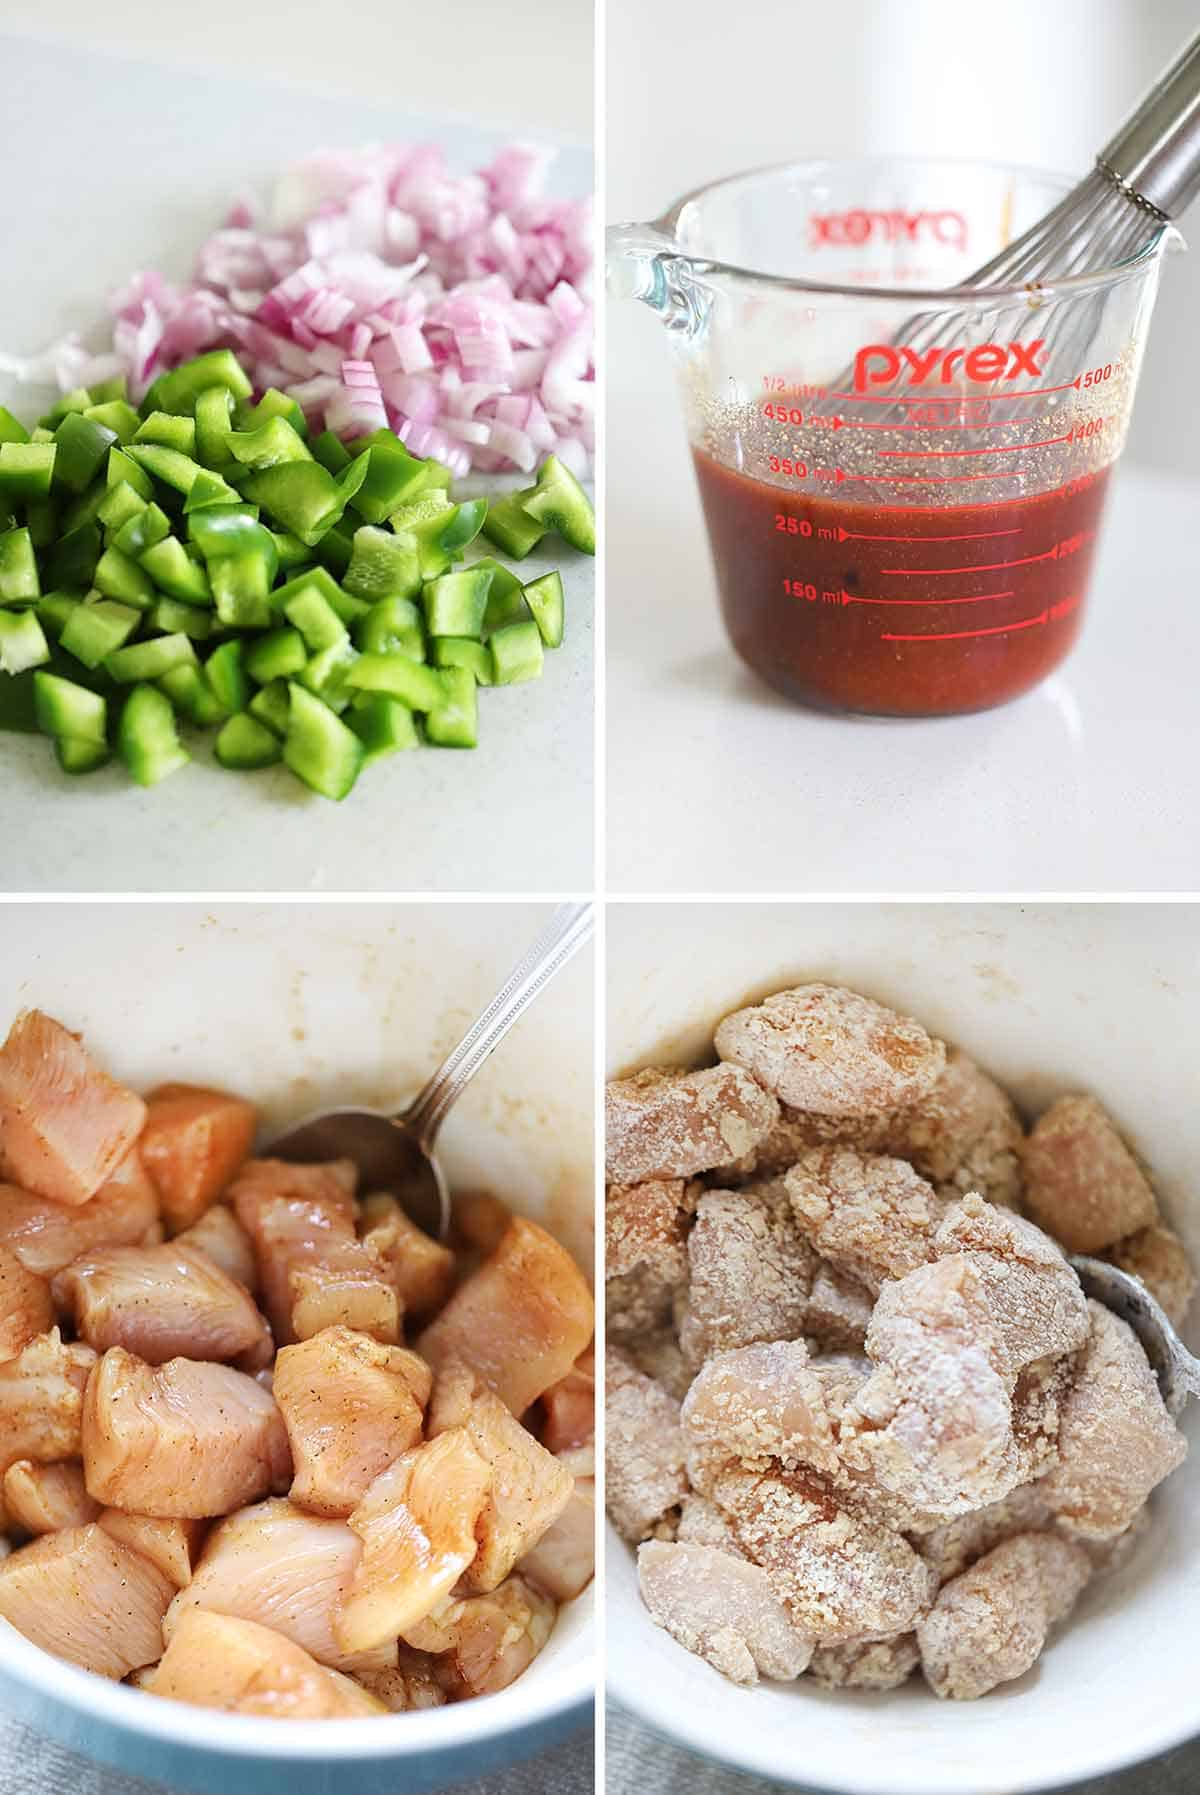 Process collage showing how to prep bell peppers, onions, sweet and sour sauce, and chicken.